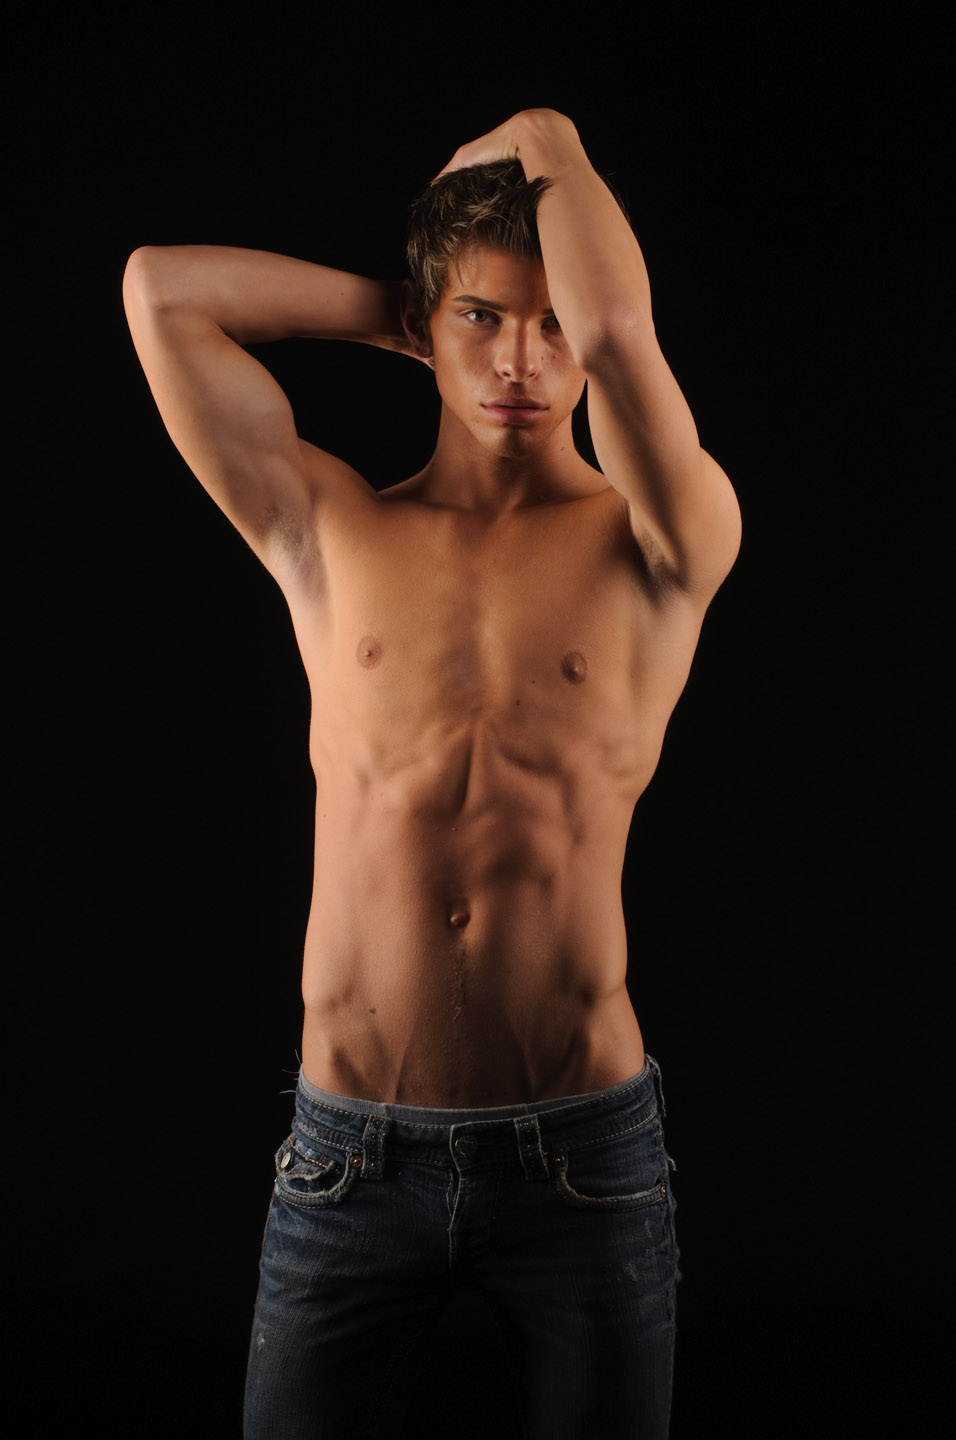 Shirtless portrait of a male model